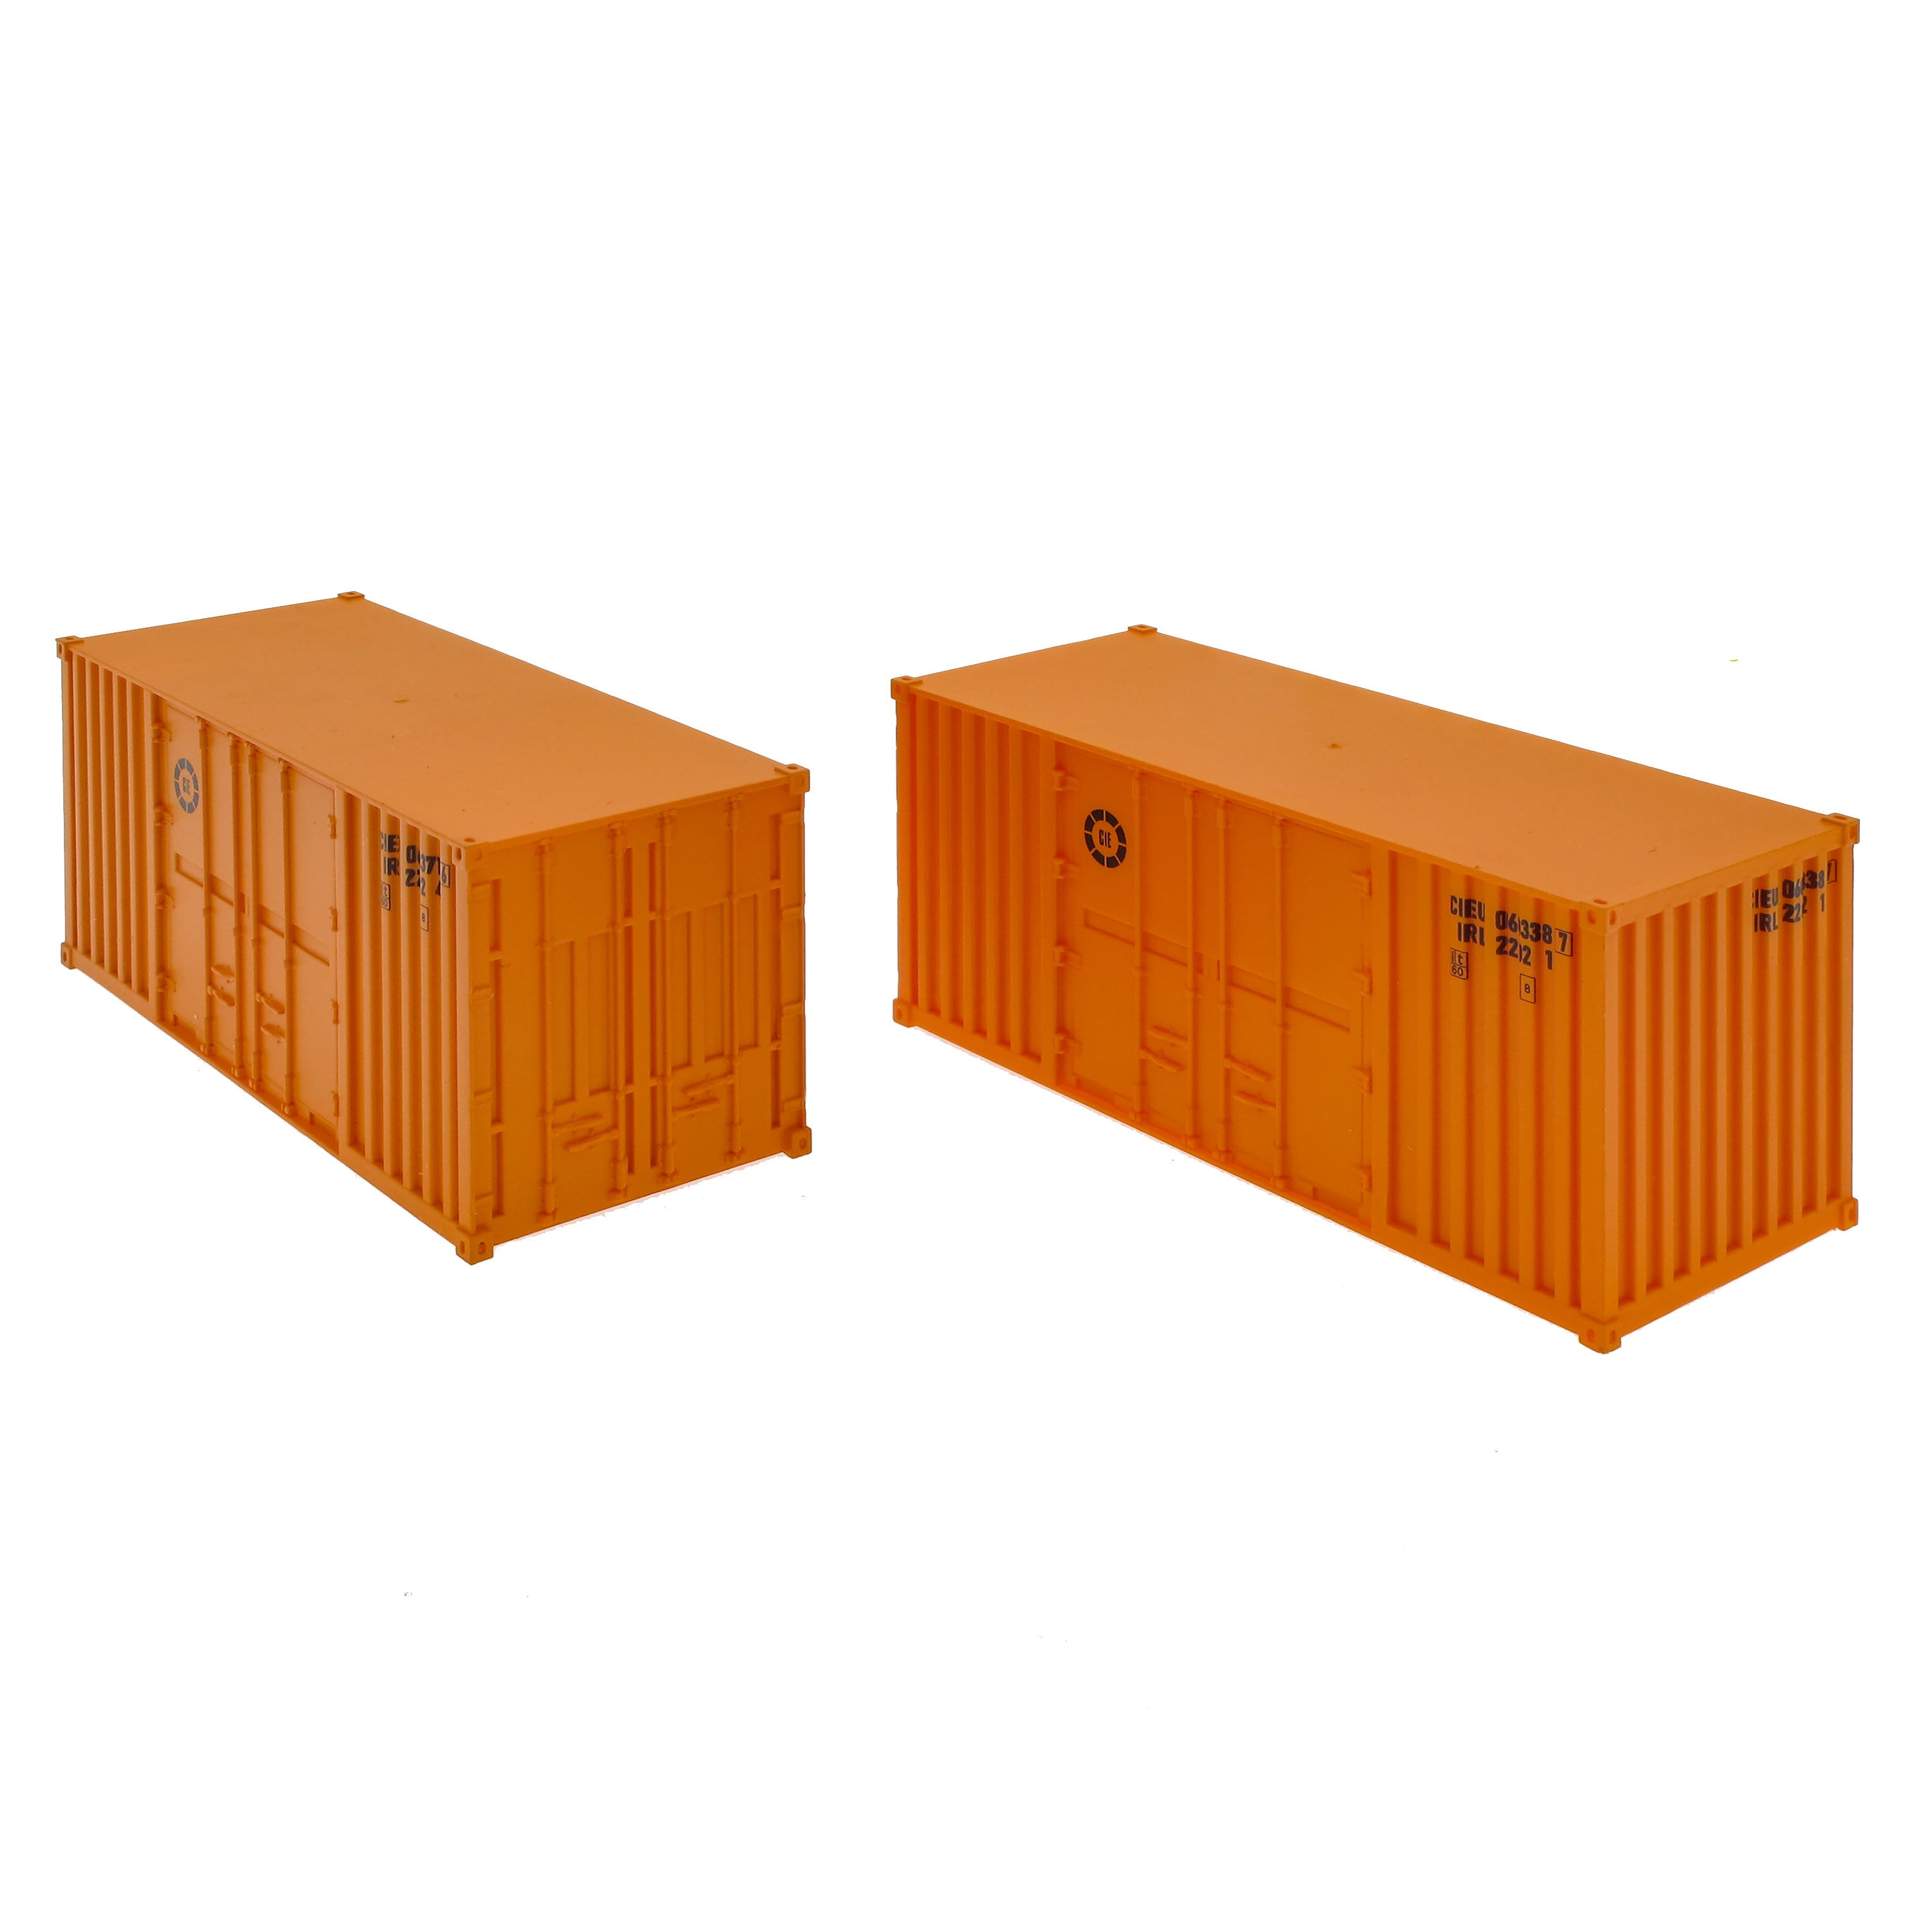 CIE 20' Container Twin Pack